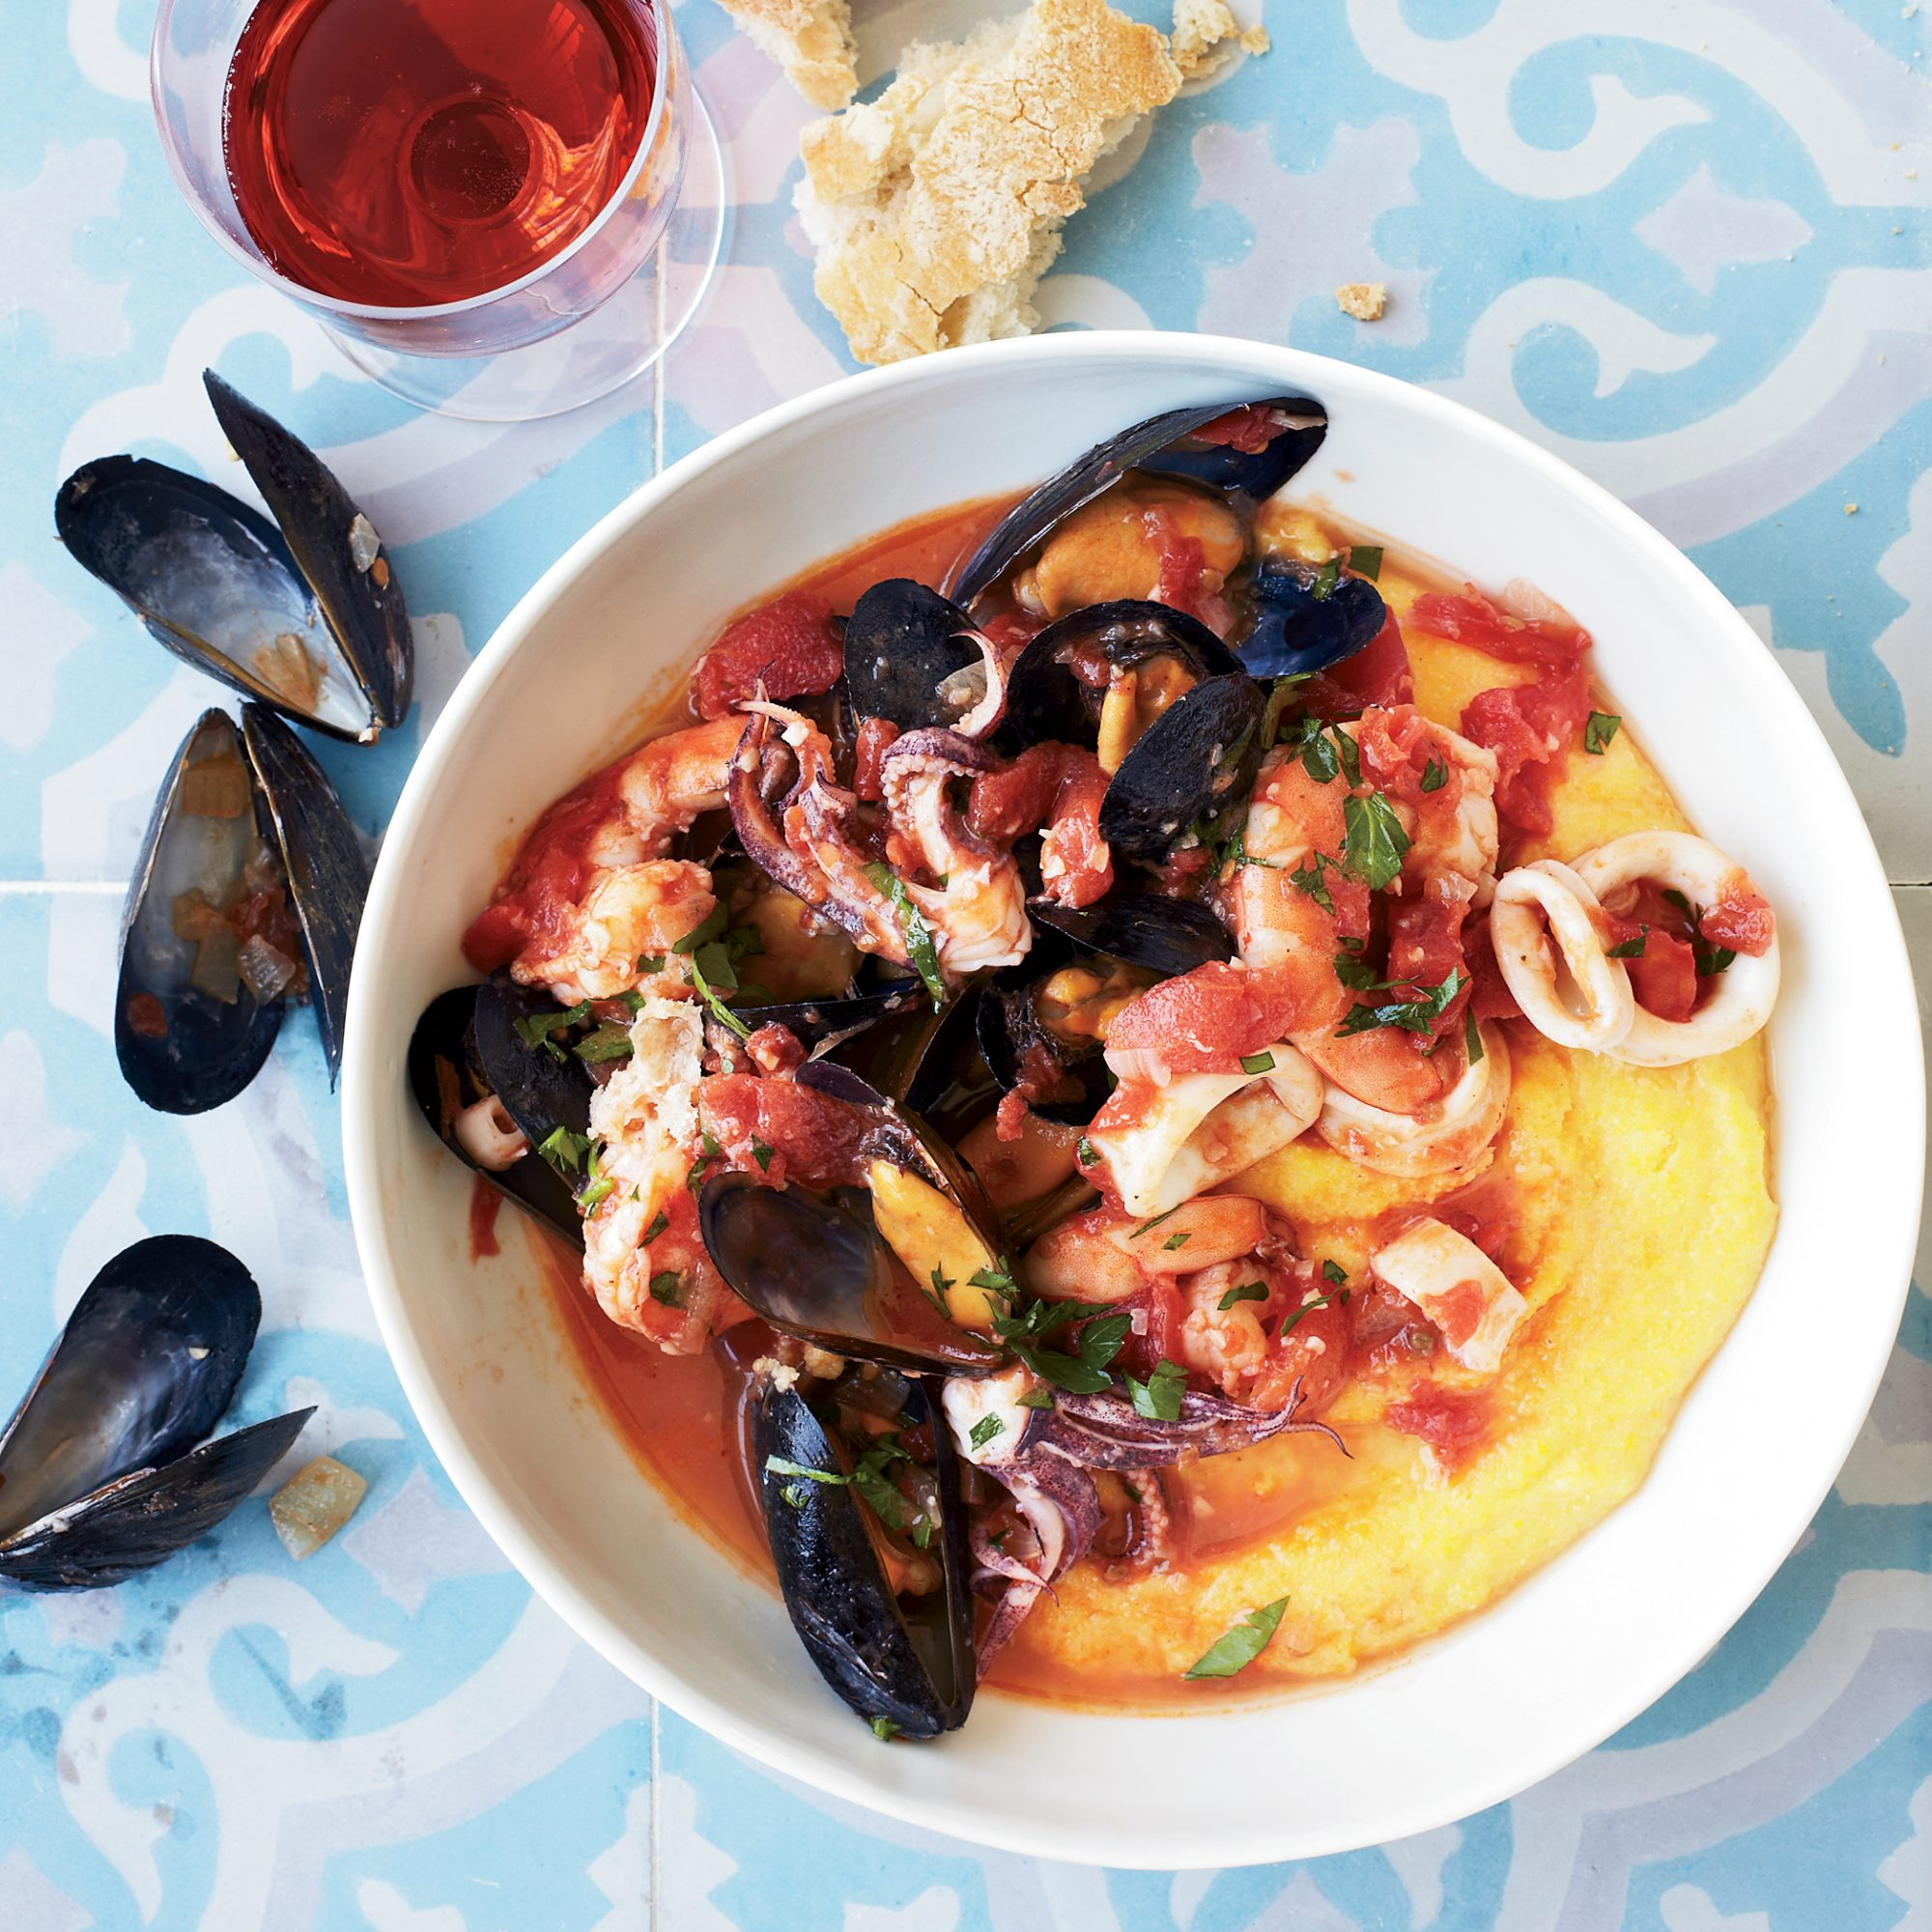 original-201209-r-shellfish-tomato-stew-on-soft-cooked-polenta.jpg